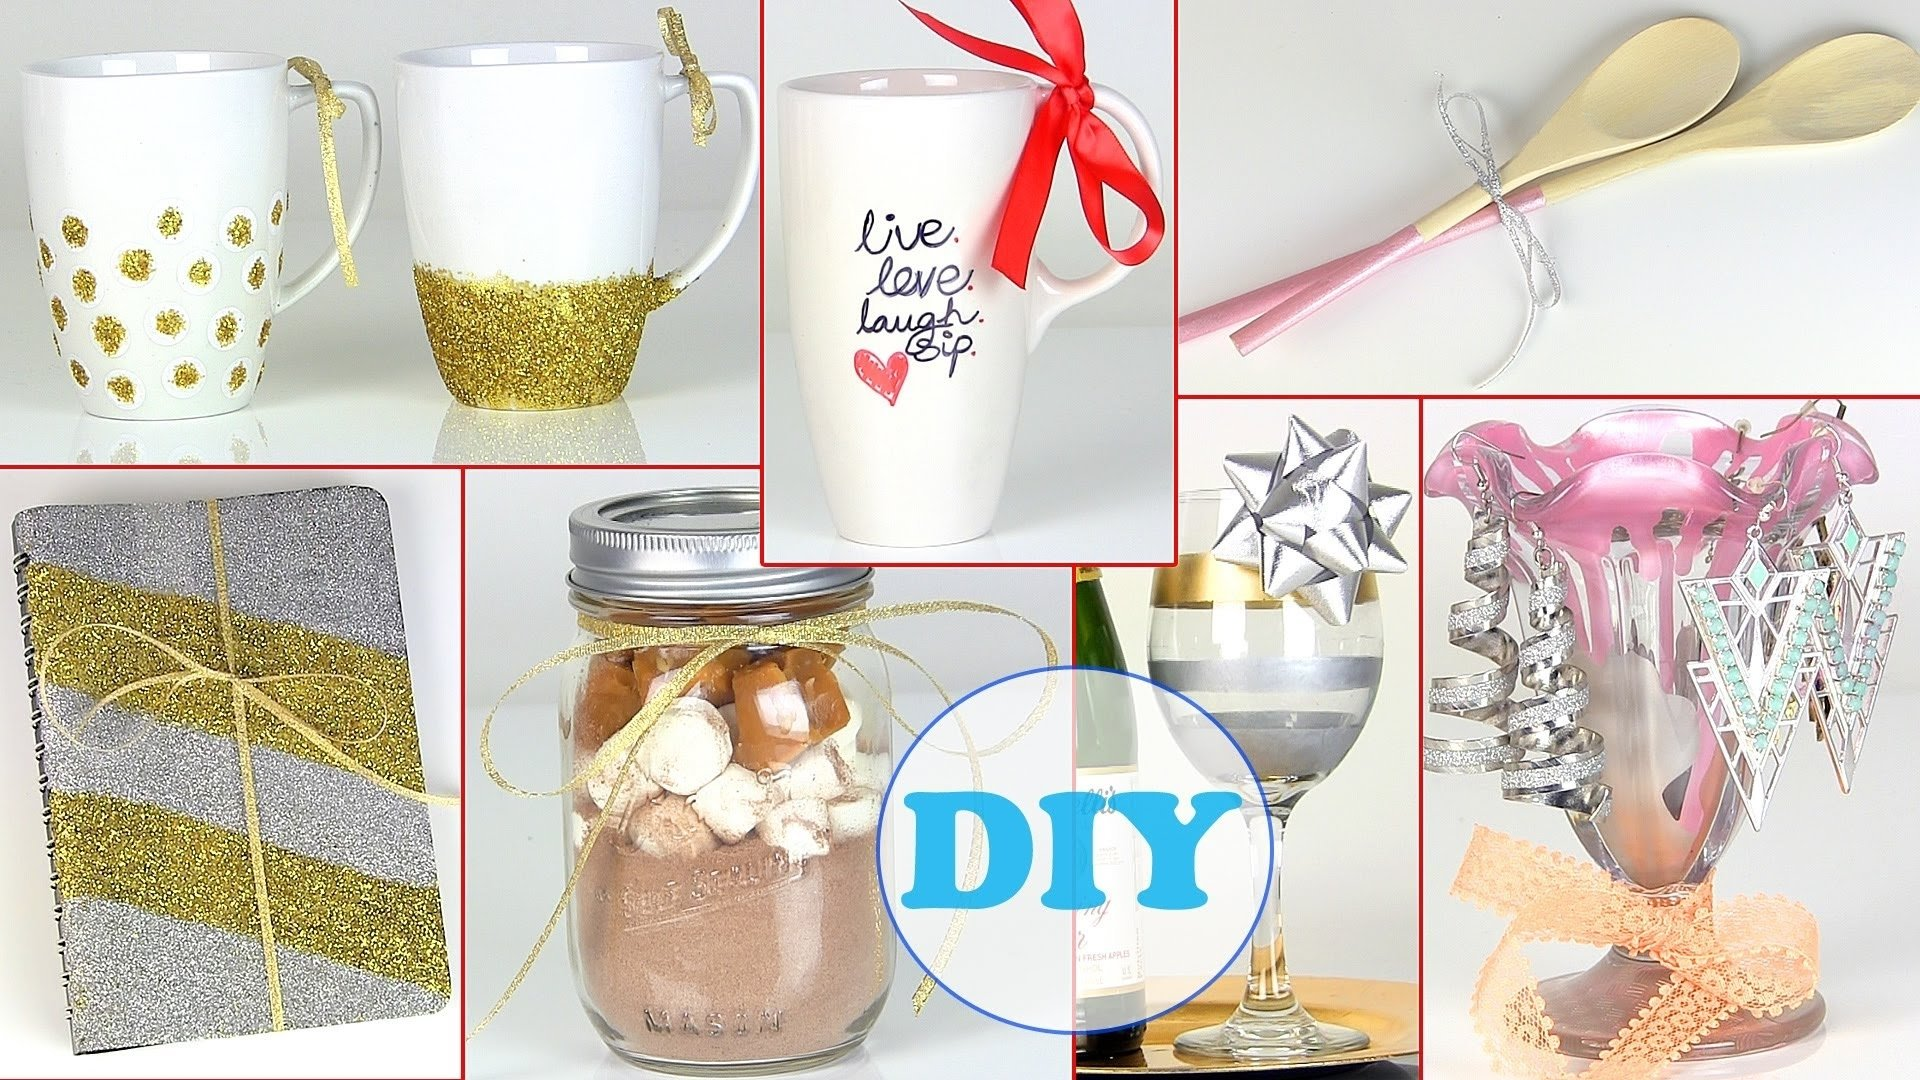 10 Amazing Last Minute Gift Ideas For Her 10 diy gift ideas last minute diy holiday gift ideas youtube